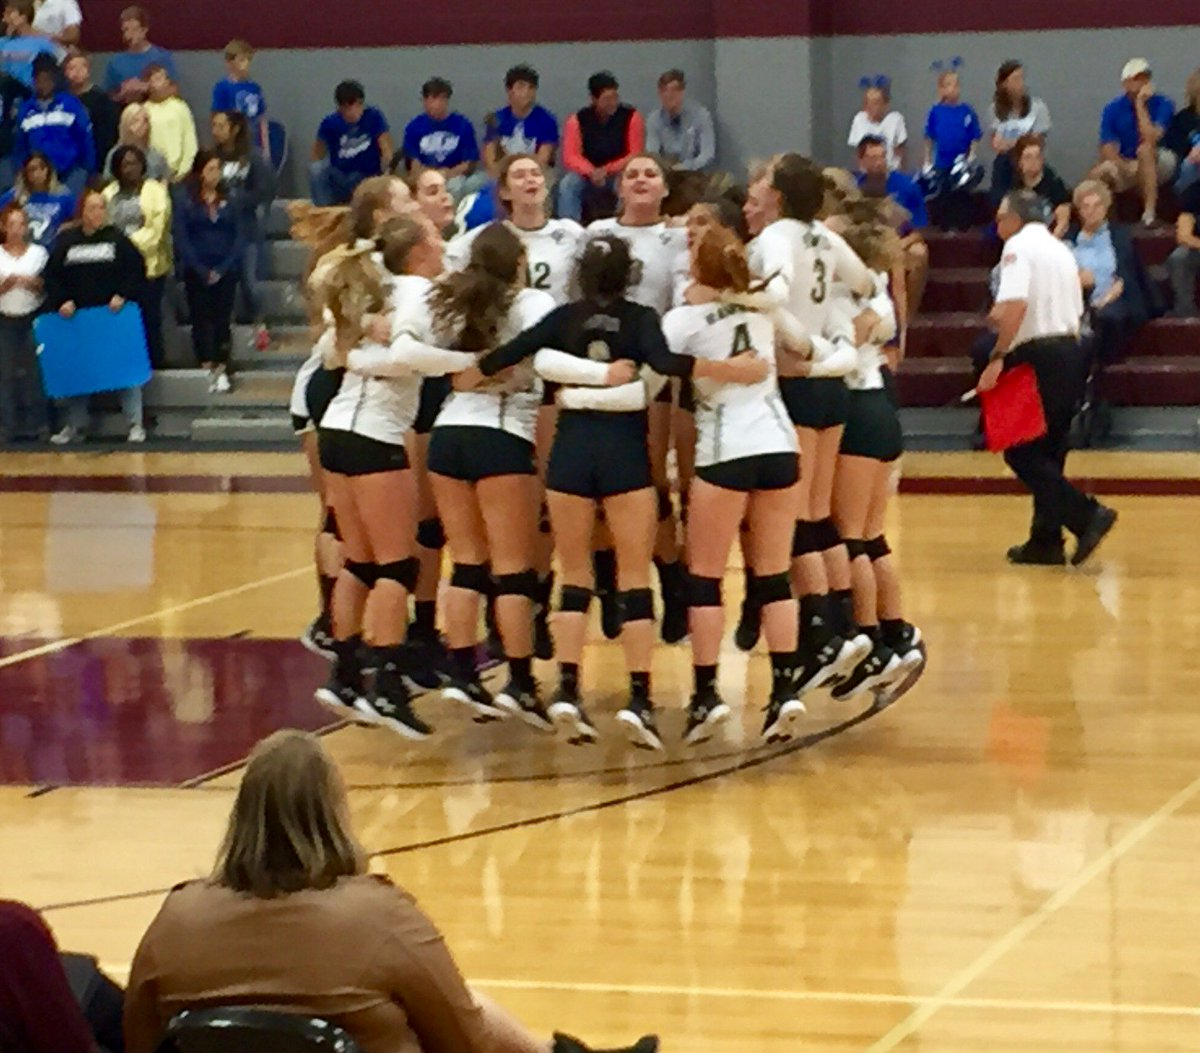 CanyonLakeVolleyball On Twitter Very Proud Of These Girls All